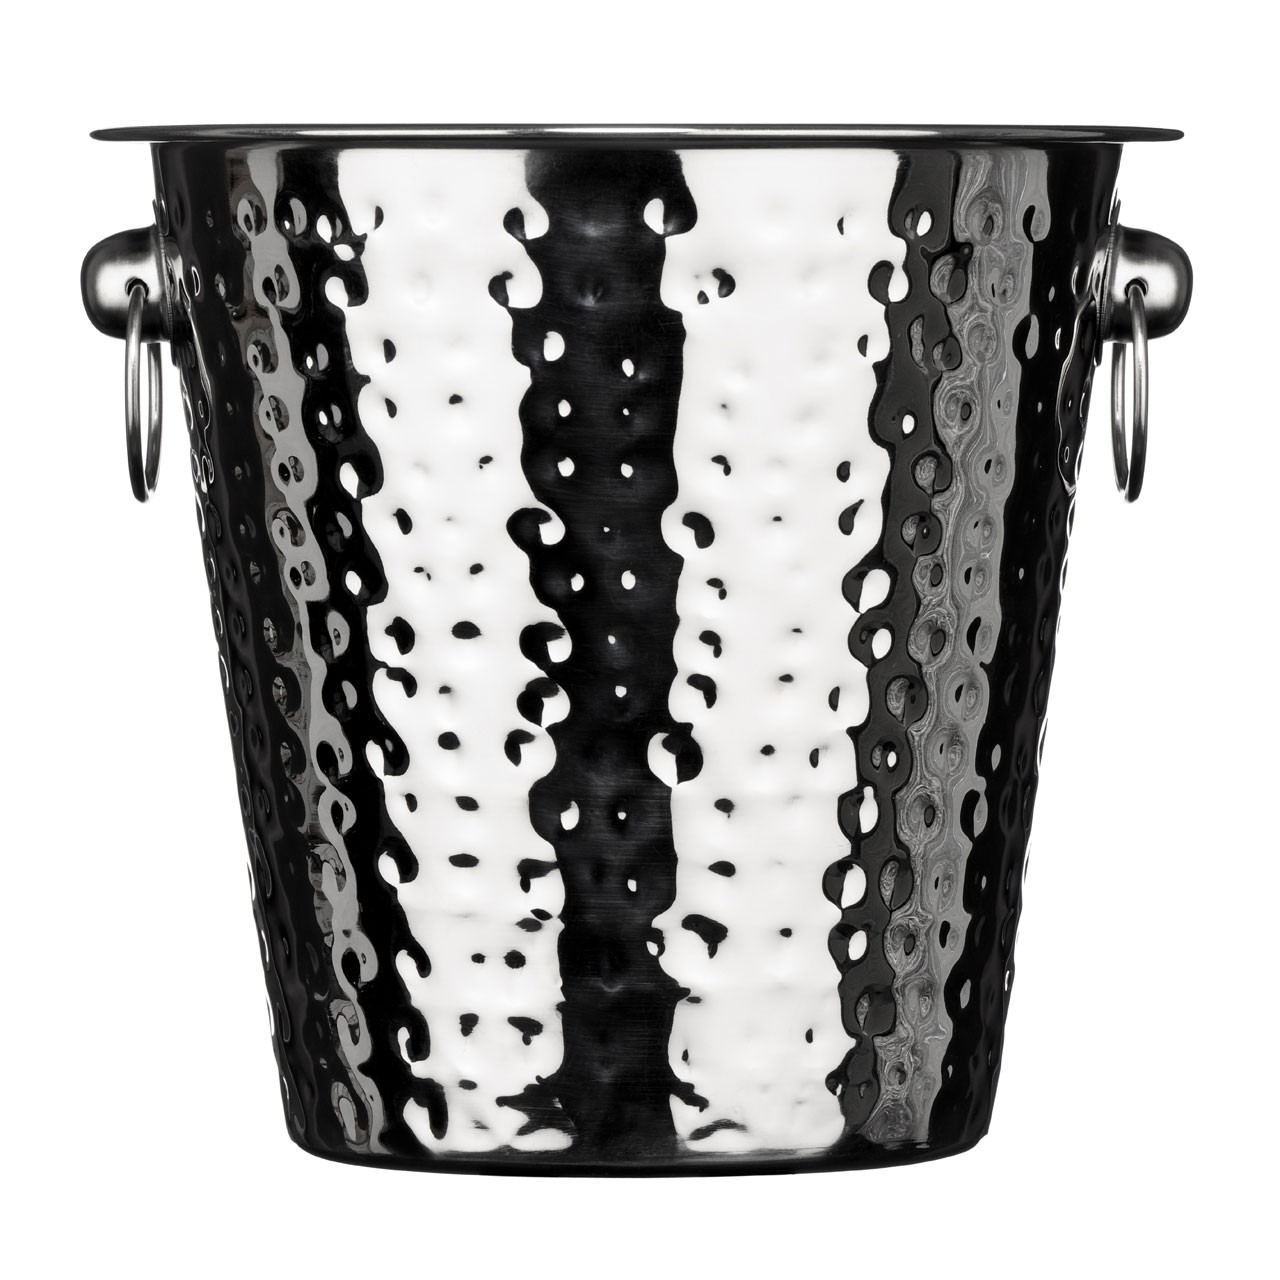 Champagne Bucket, Hammered Stainless Steel